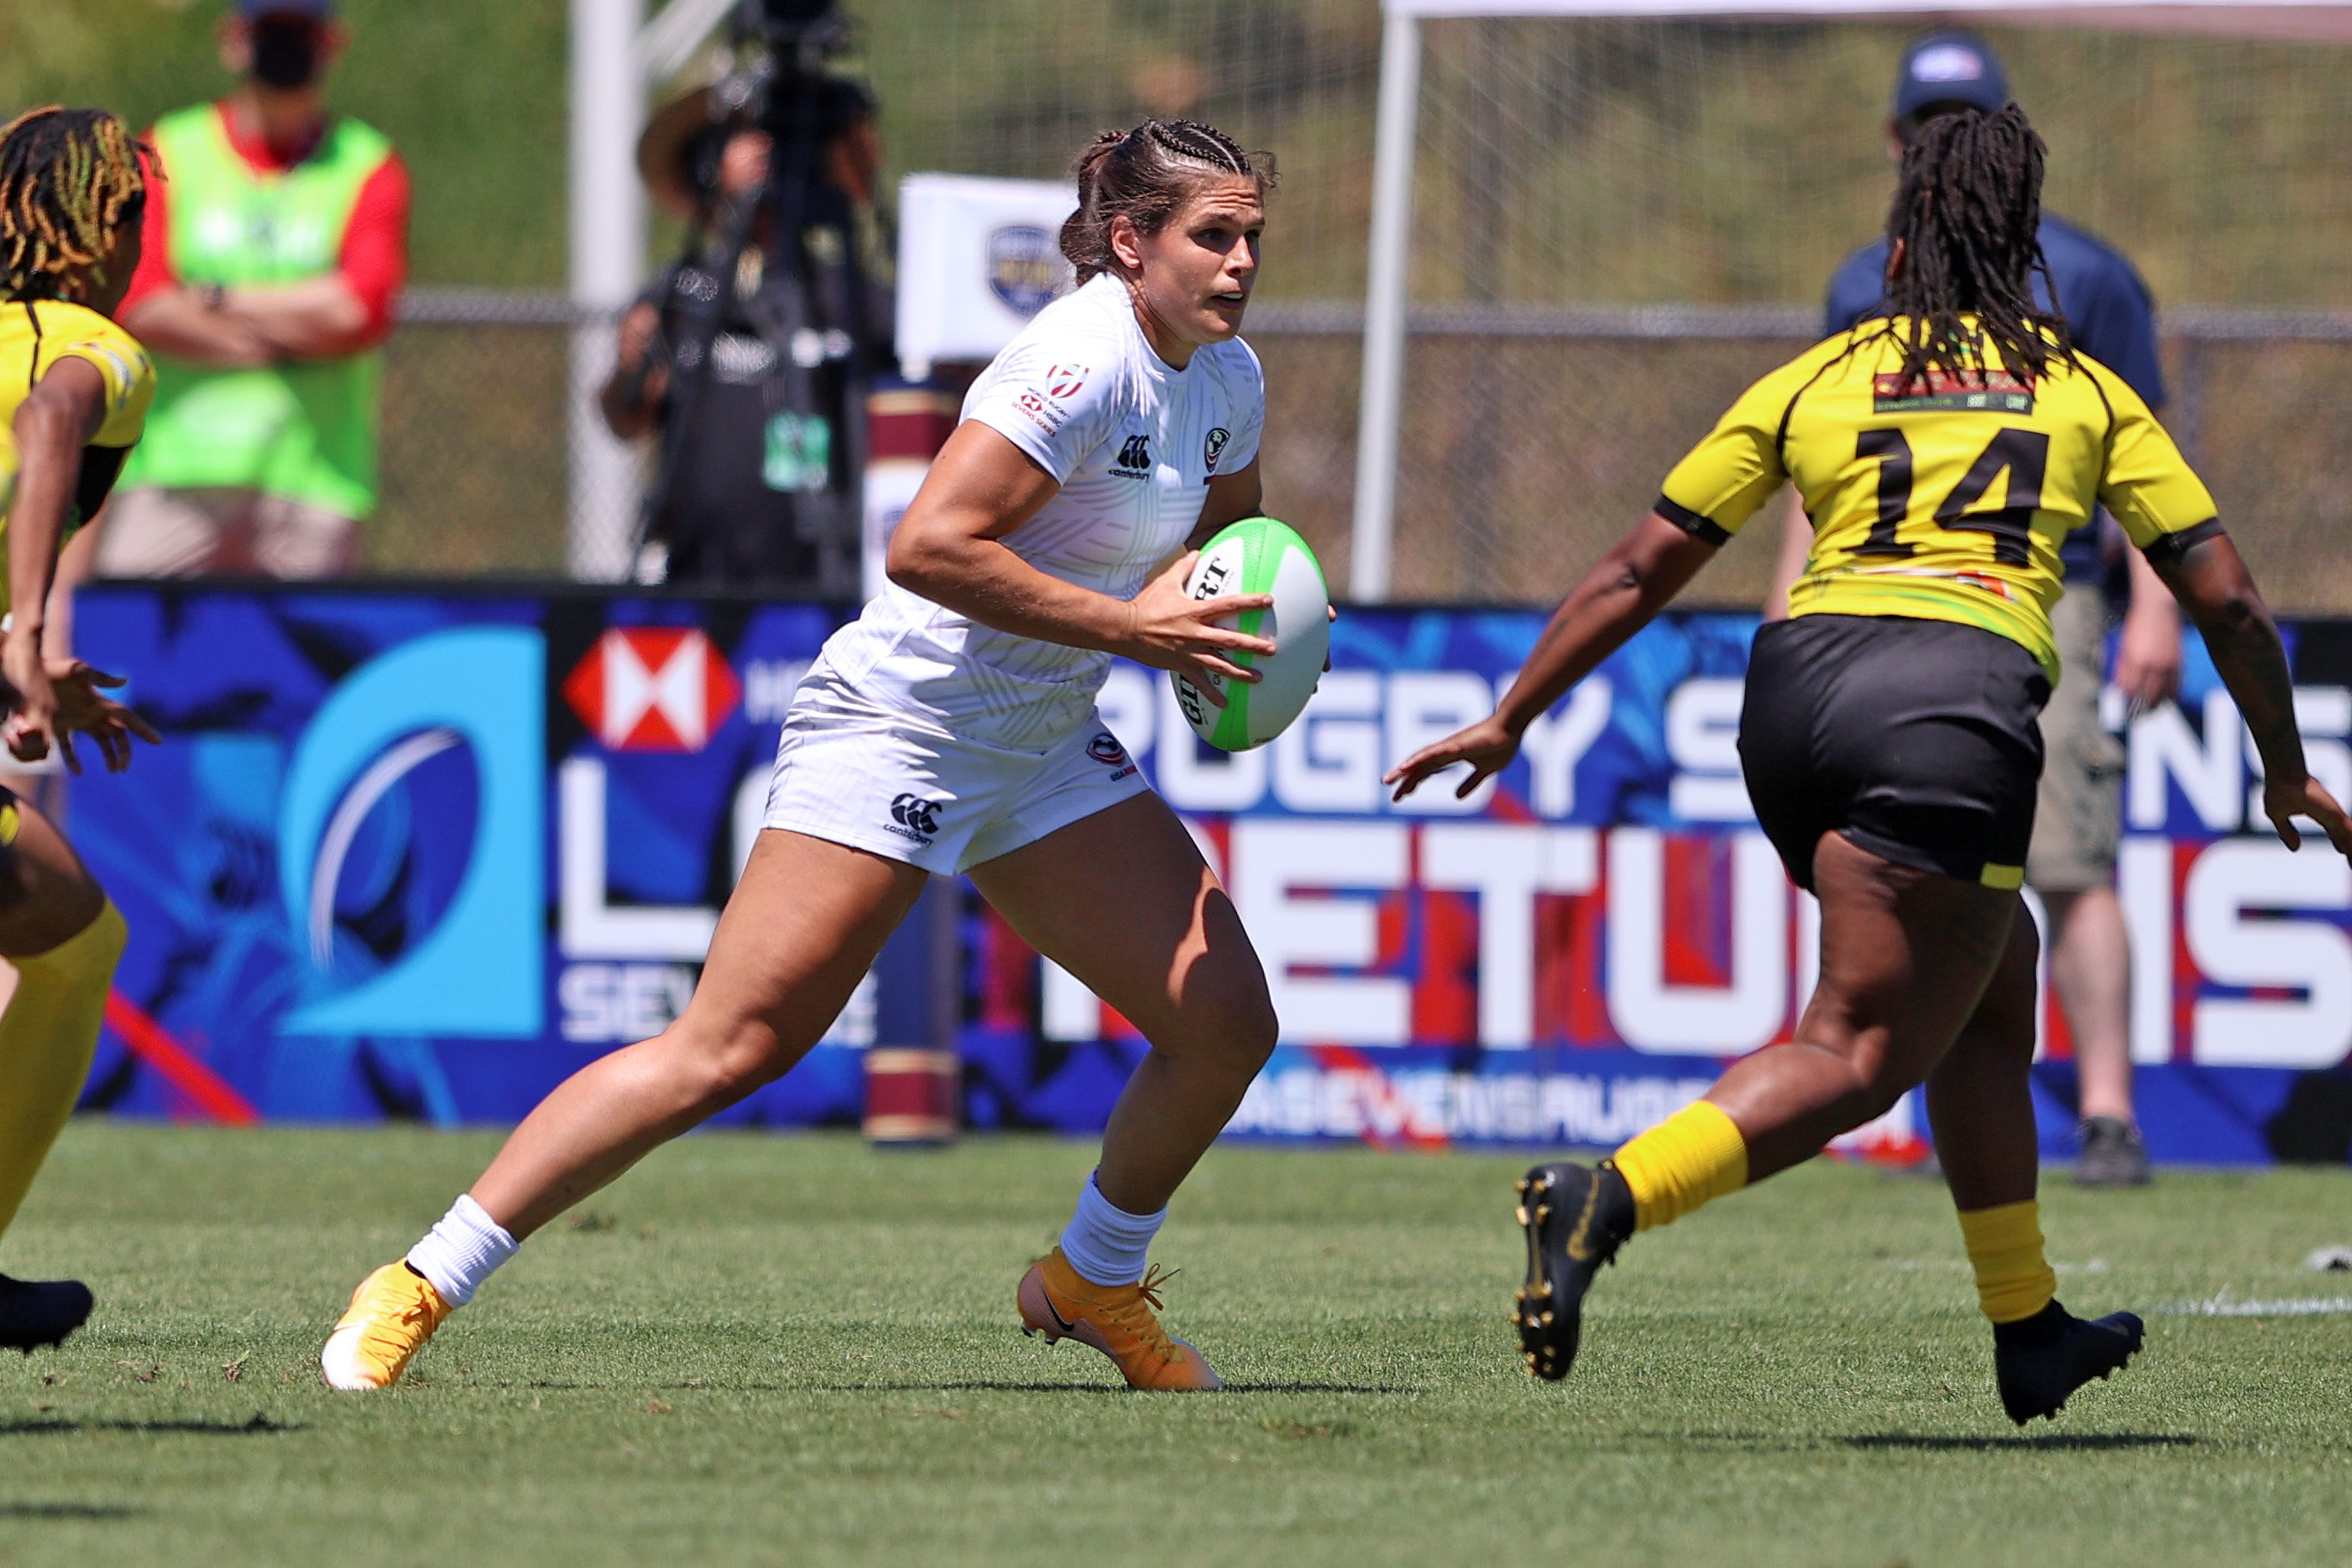 Burlington native Ilona Maher and the United States women's rugby sevens national team will compete at the Tokyo Olympics later this month.